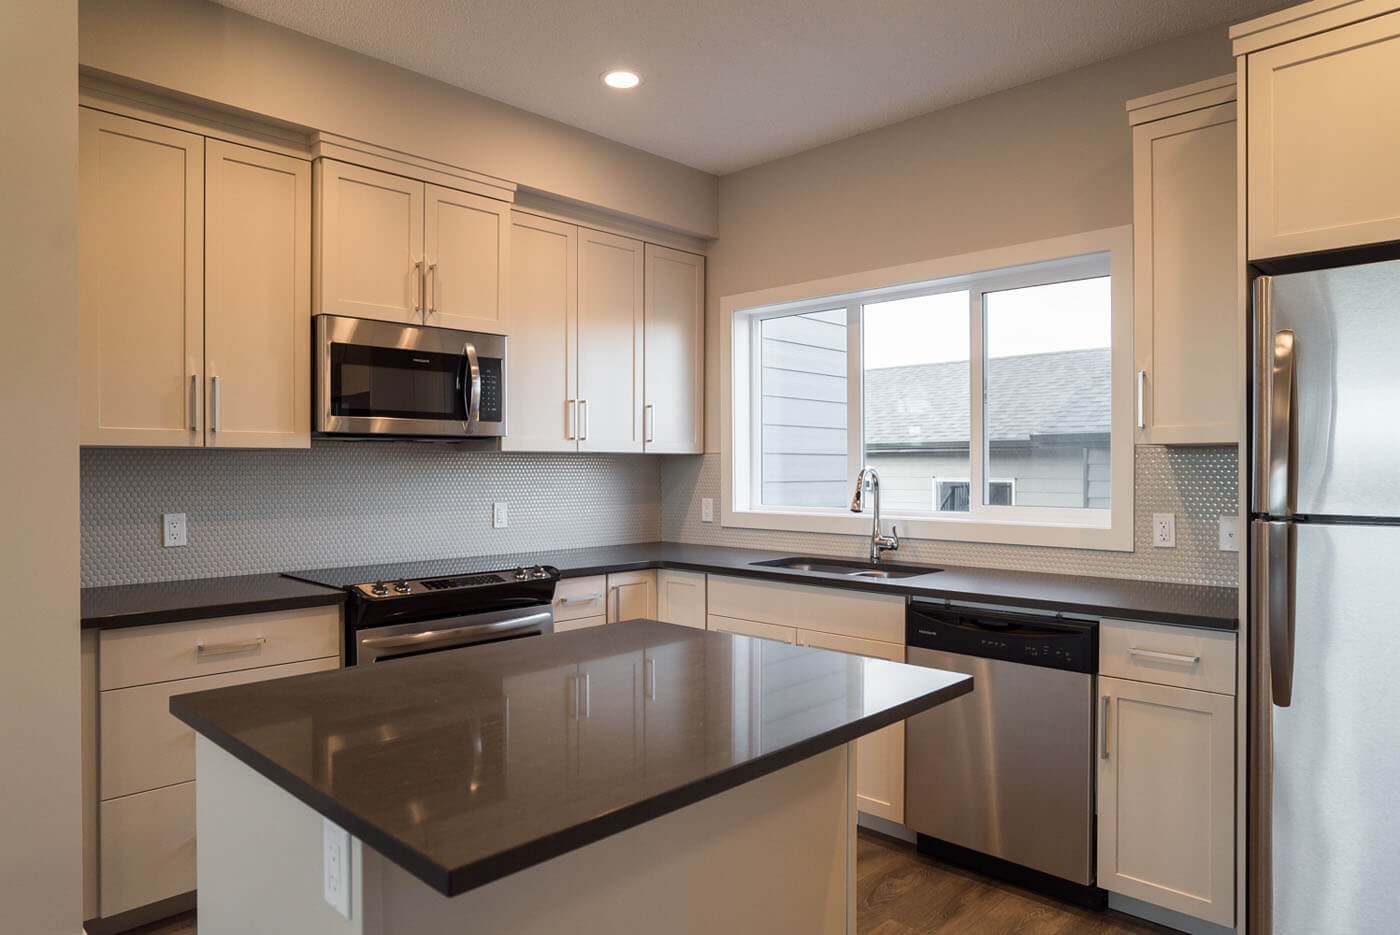 New Calgary Paired Home Quick Possession Soho 3 in Walden, located at 1347 Walden Drive SE Built By Cardel Homes Calgary